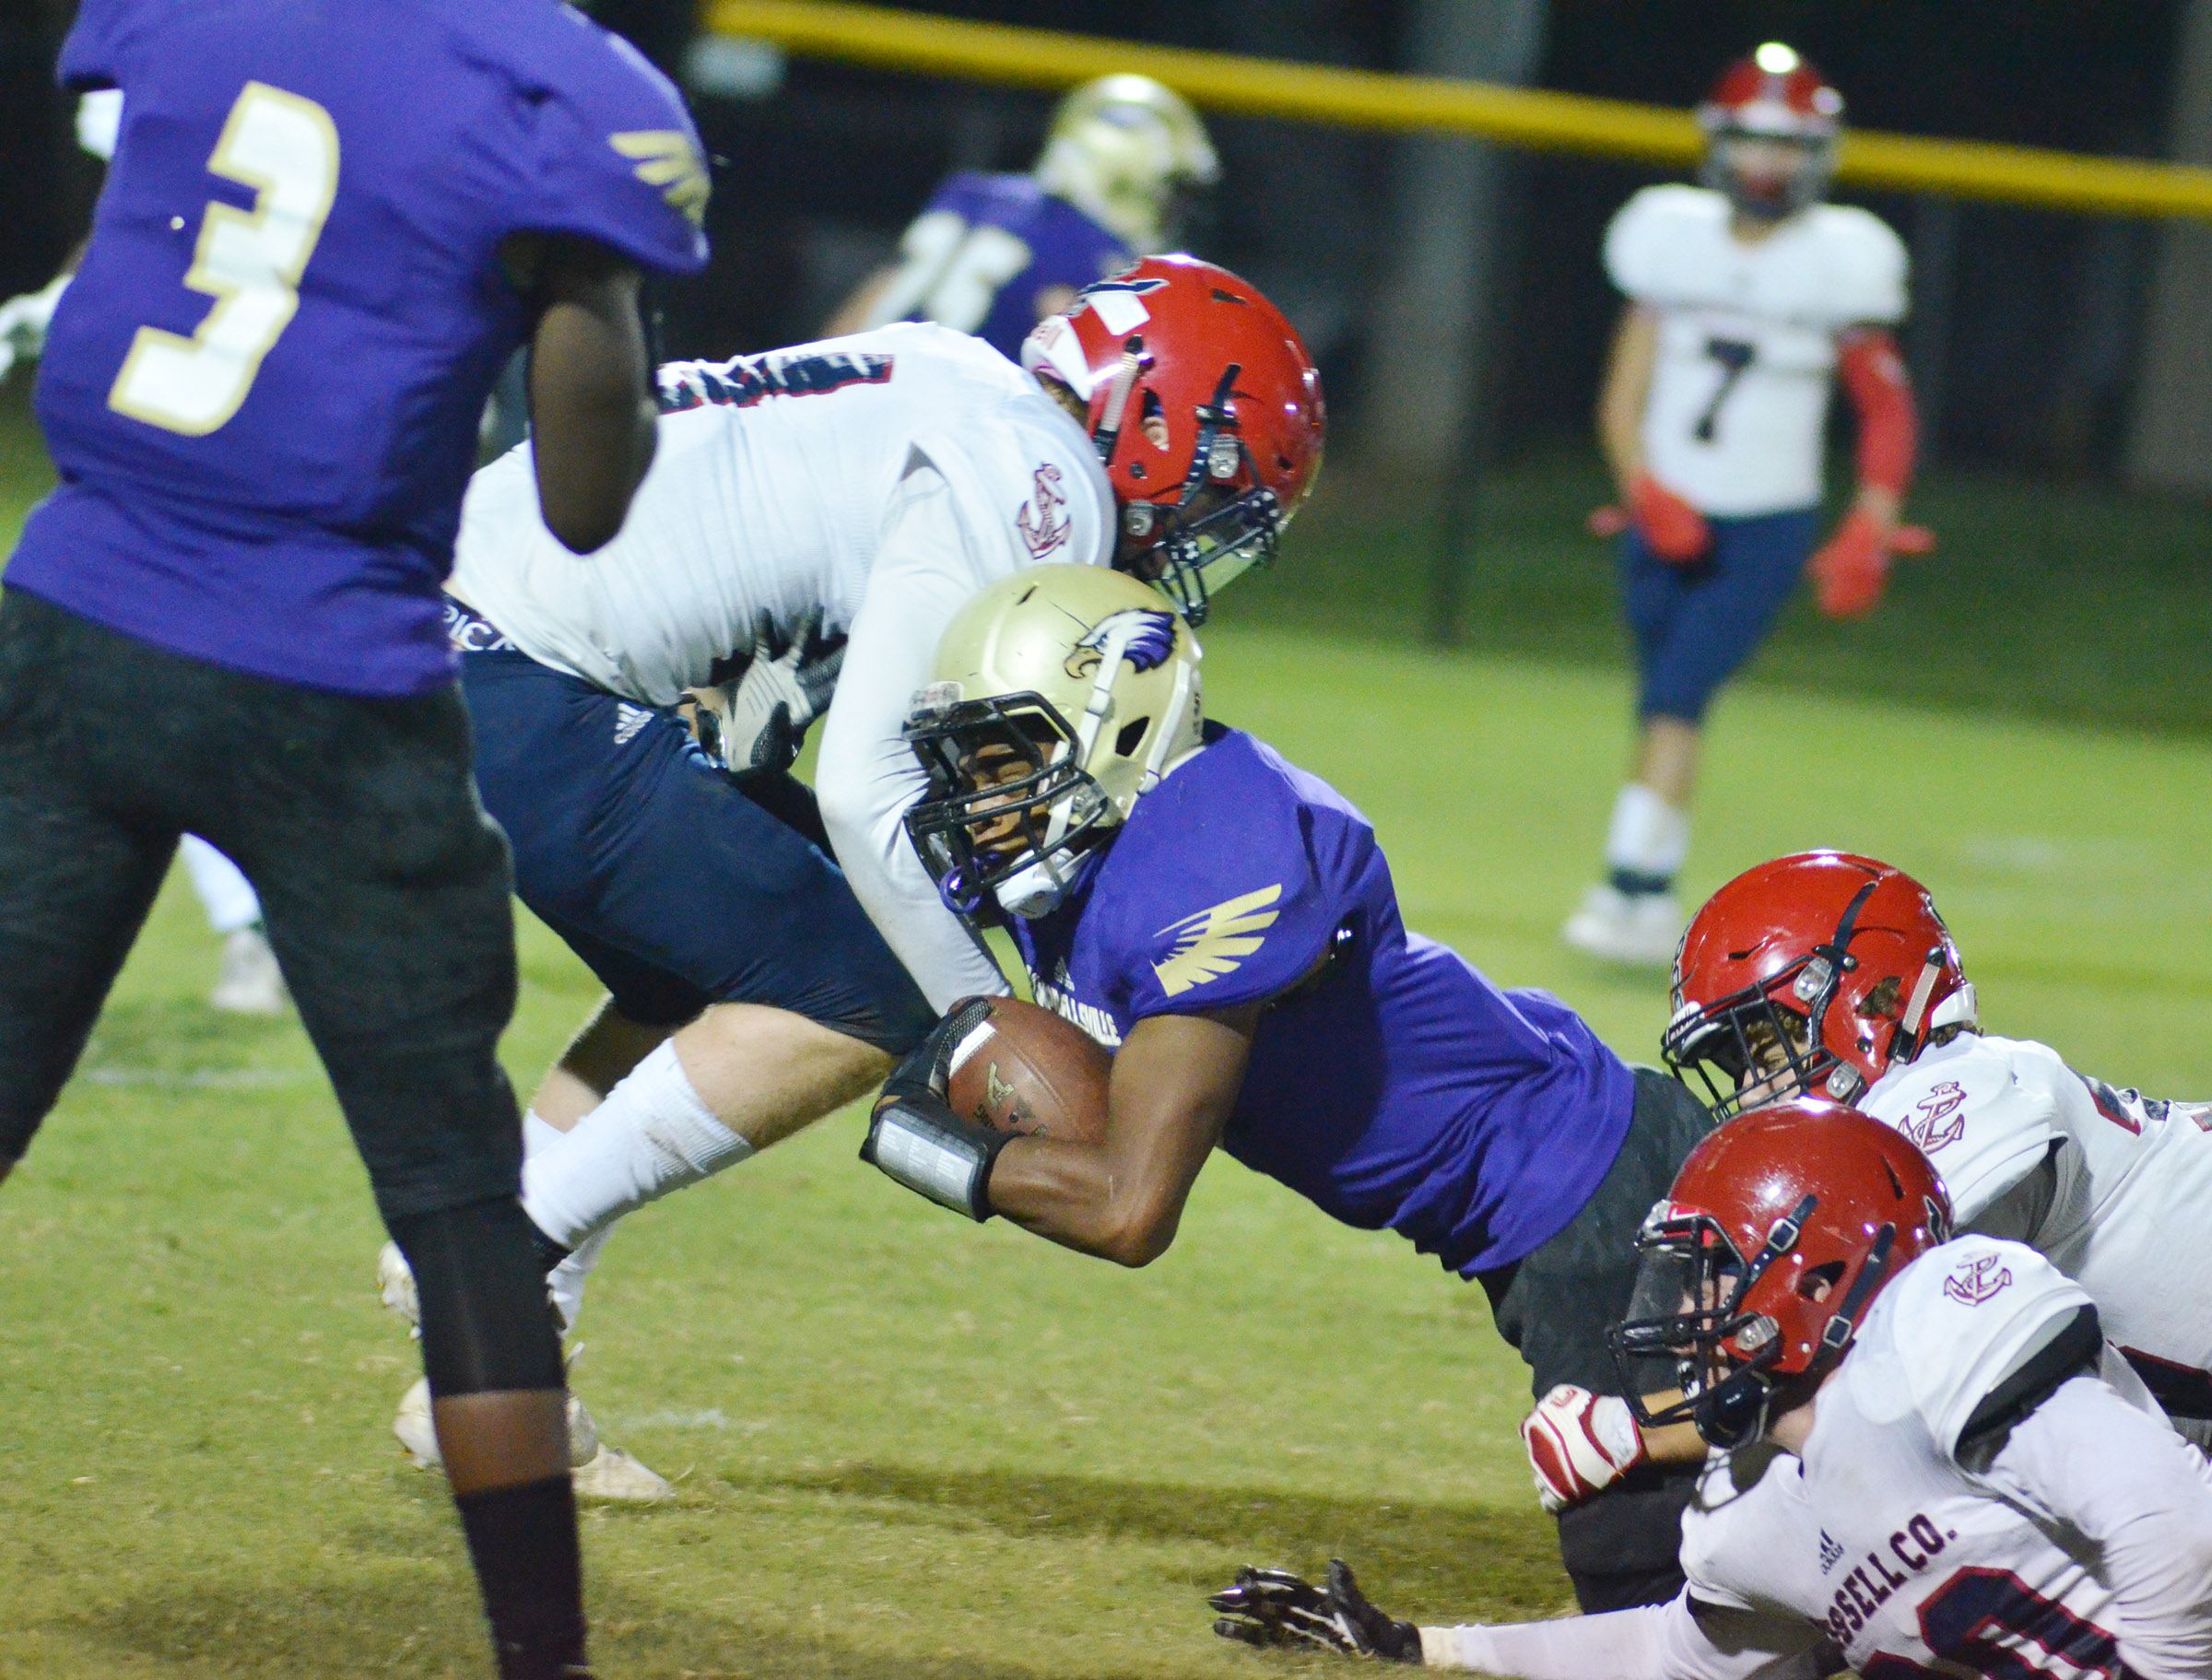 CHS senior Devonte Cubit is tackled.